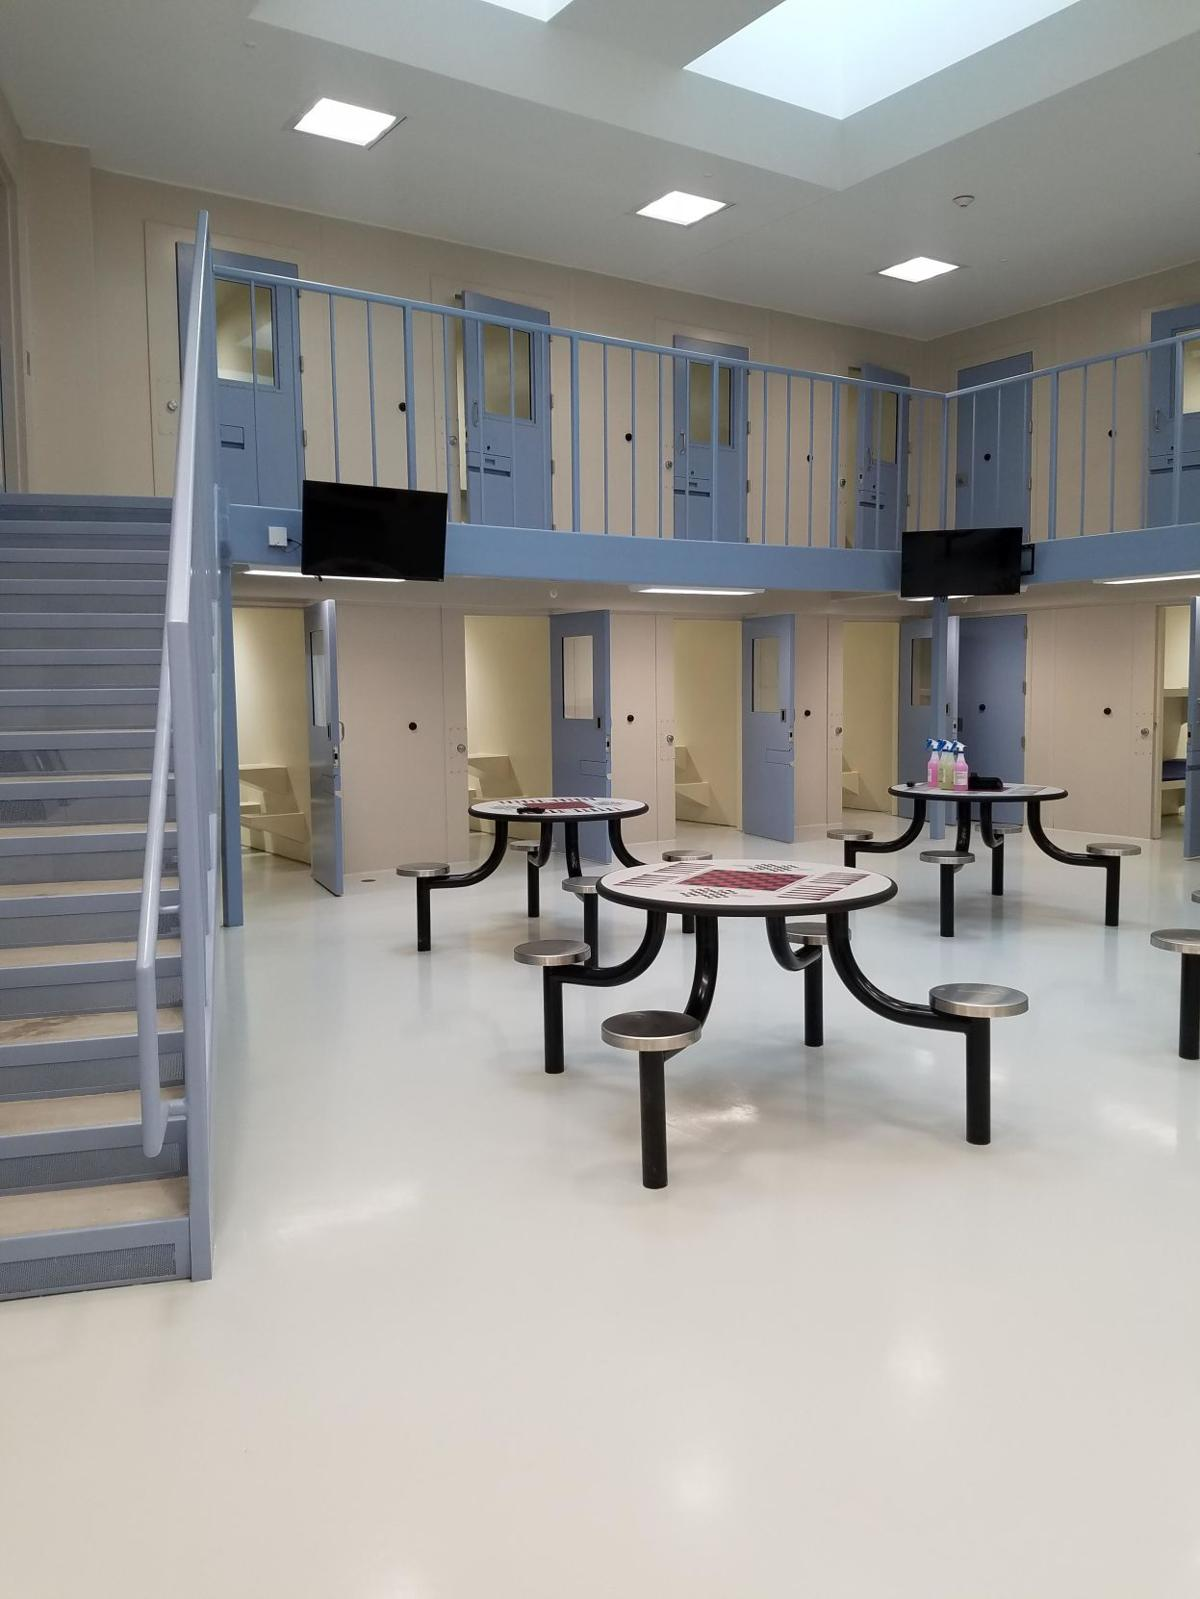 JAILED  FOR GOOD: How I helped 'break in' the new Chisago County jail